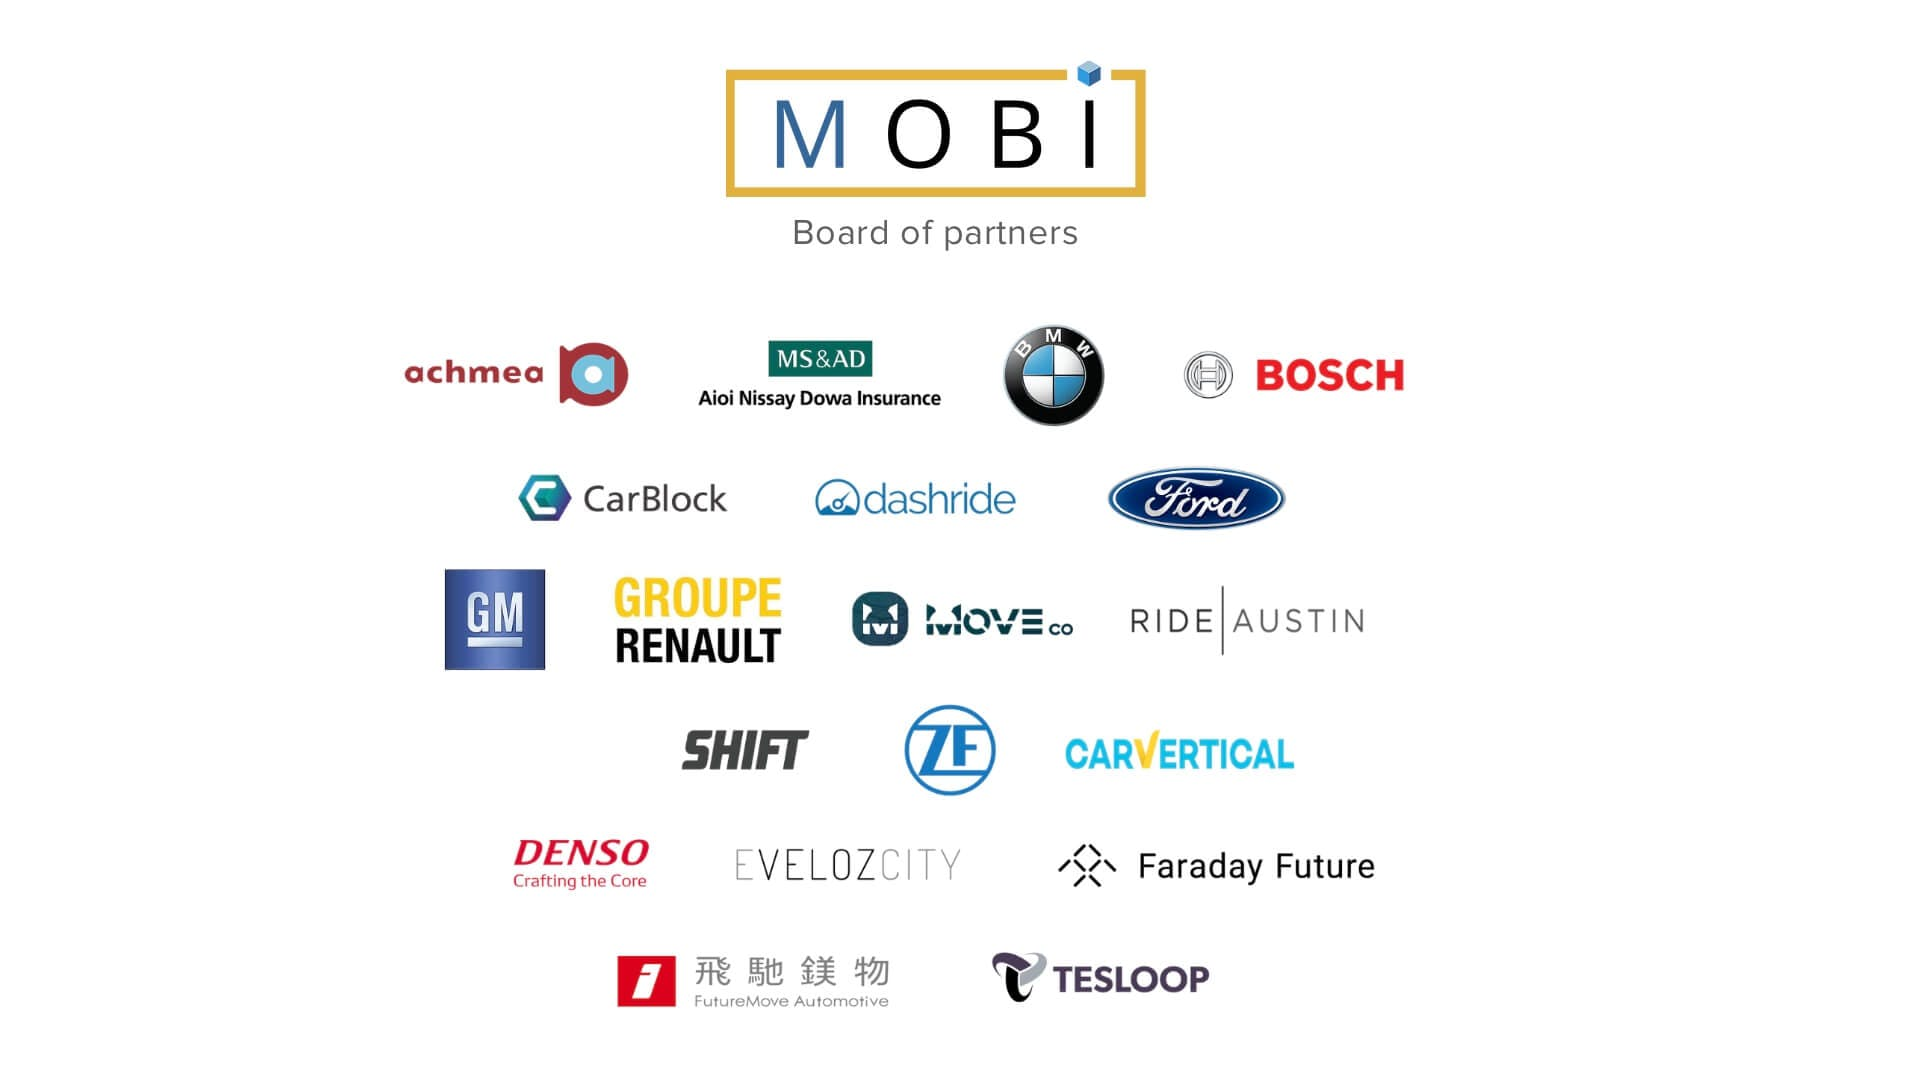 carVertical rejoint la prestigieuse initiative MOBI